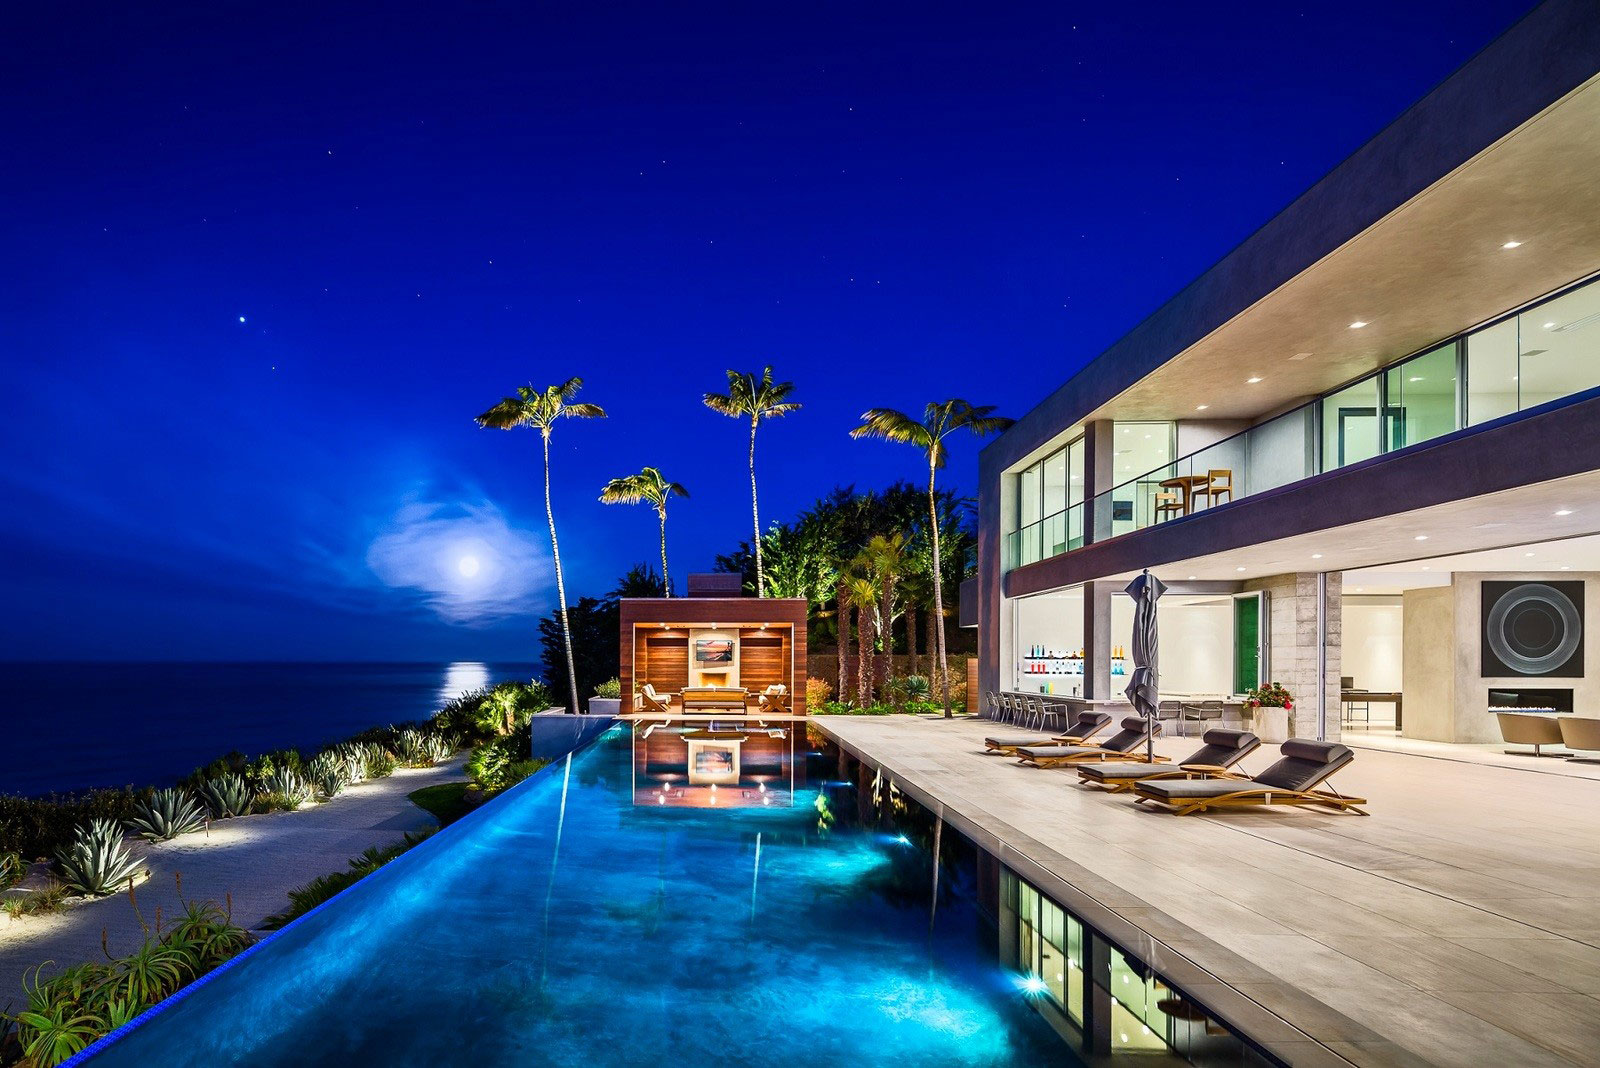 A Stunning Contemporary Property Up For Sale in Malibu